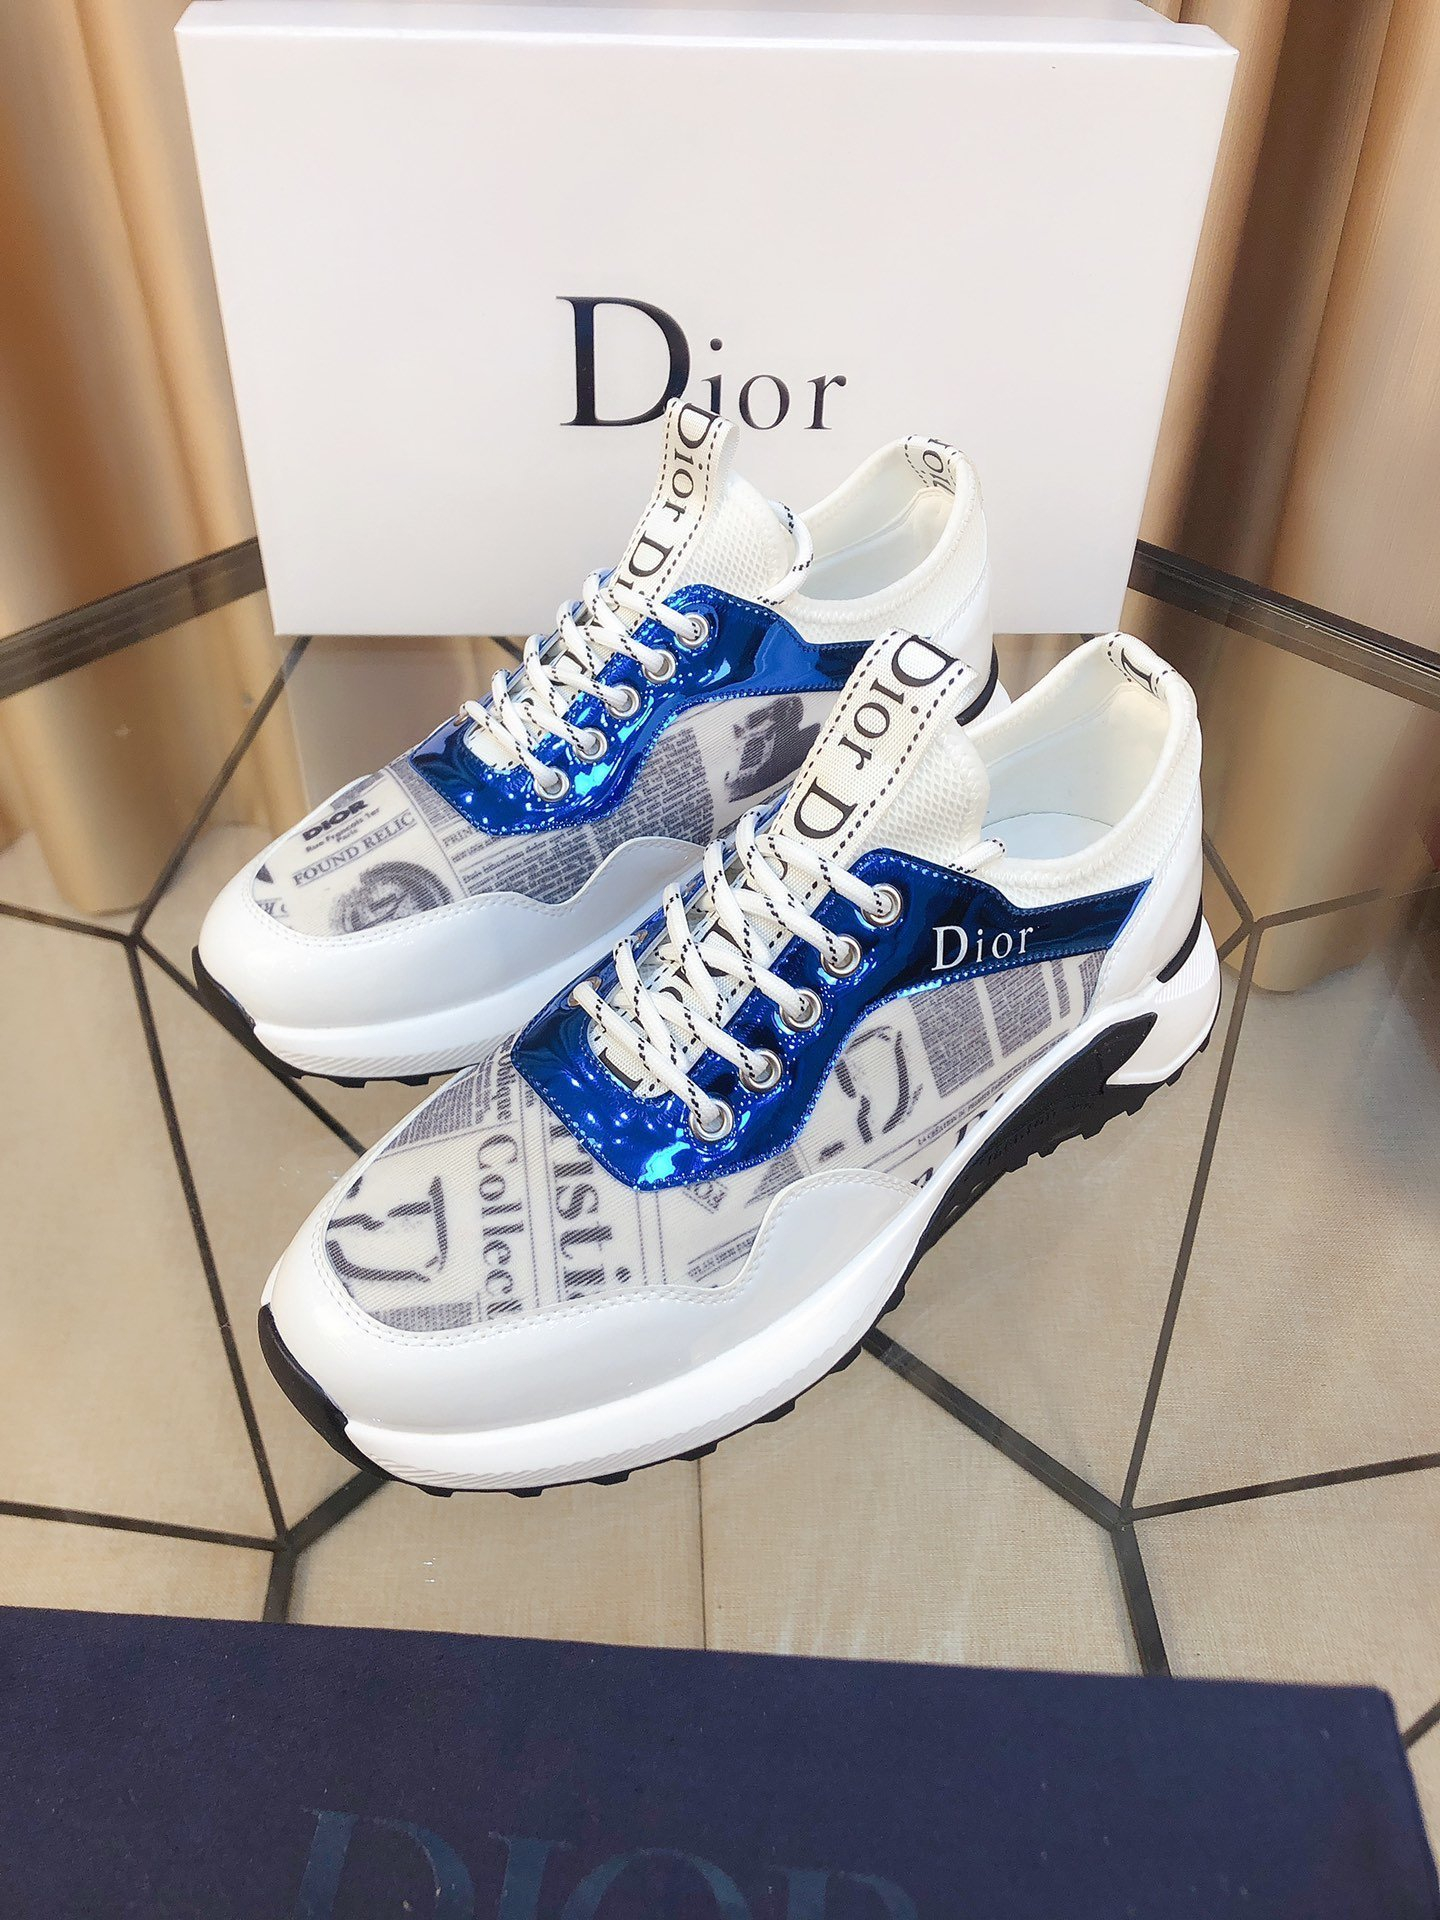 Image of DIOR  Men Fashion Boots fashionable Casual leather Breathable Sneakers Running Shoes